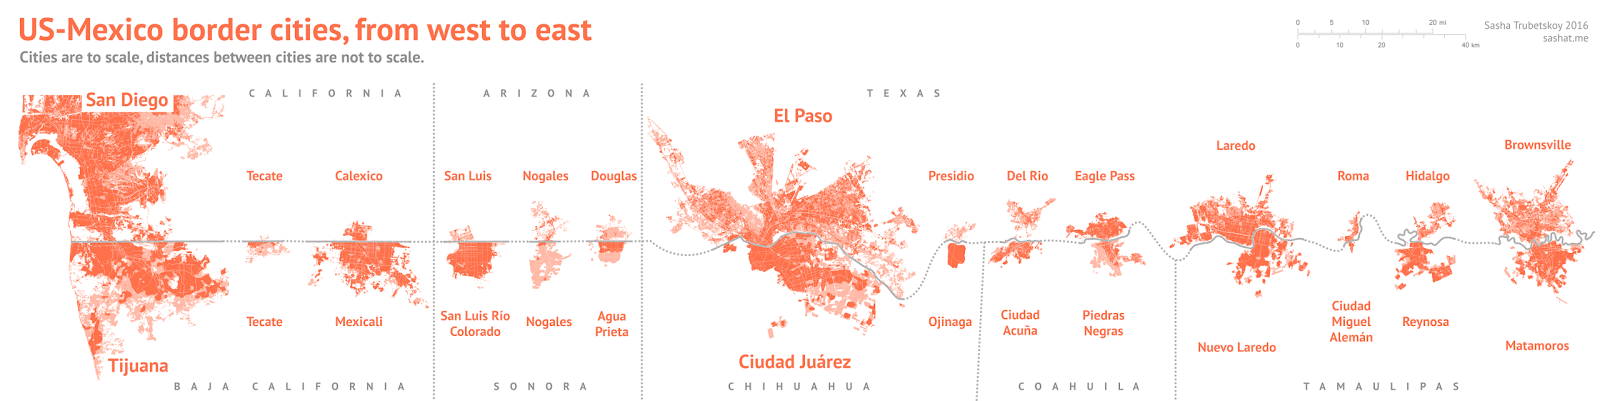 U.S. - Mexico border cities, from west to east